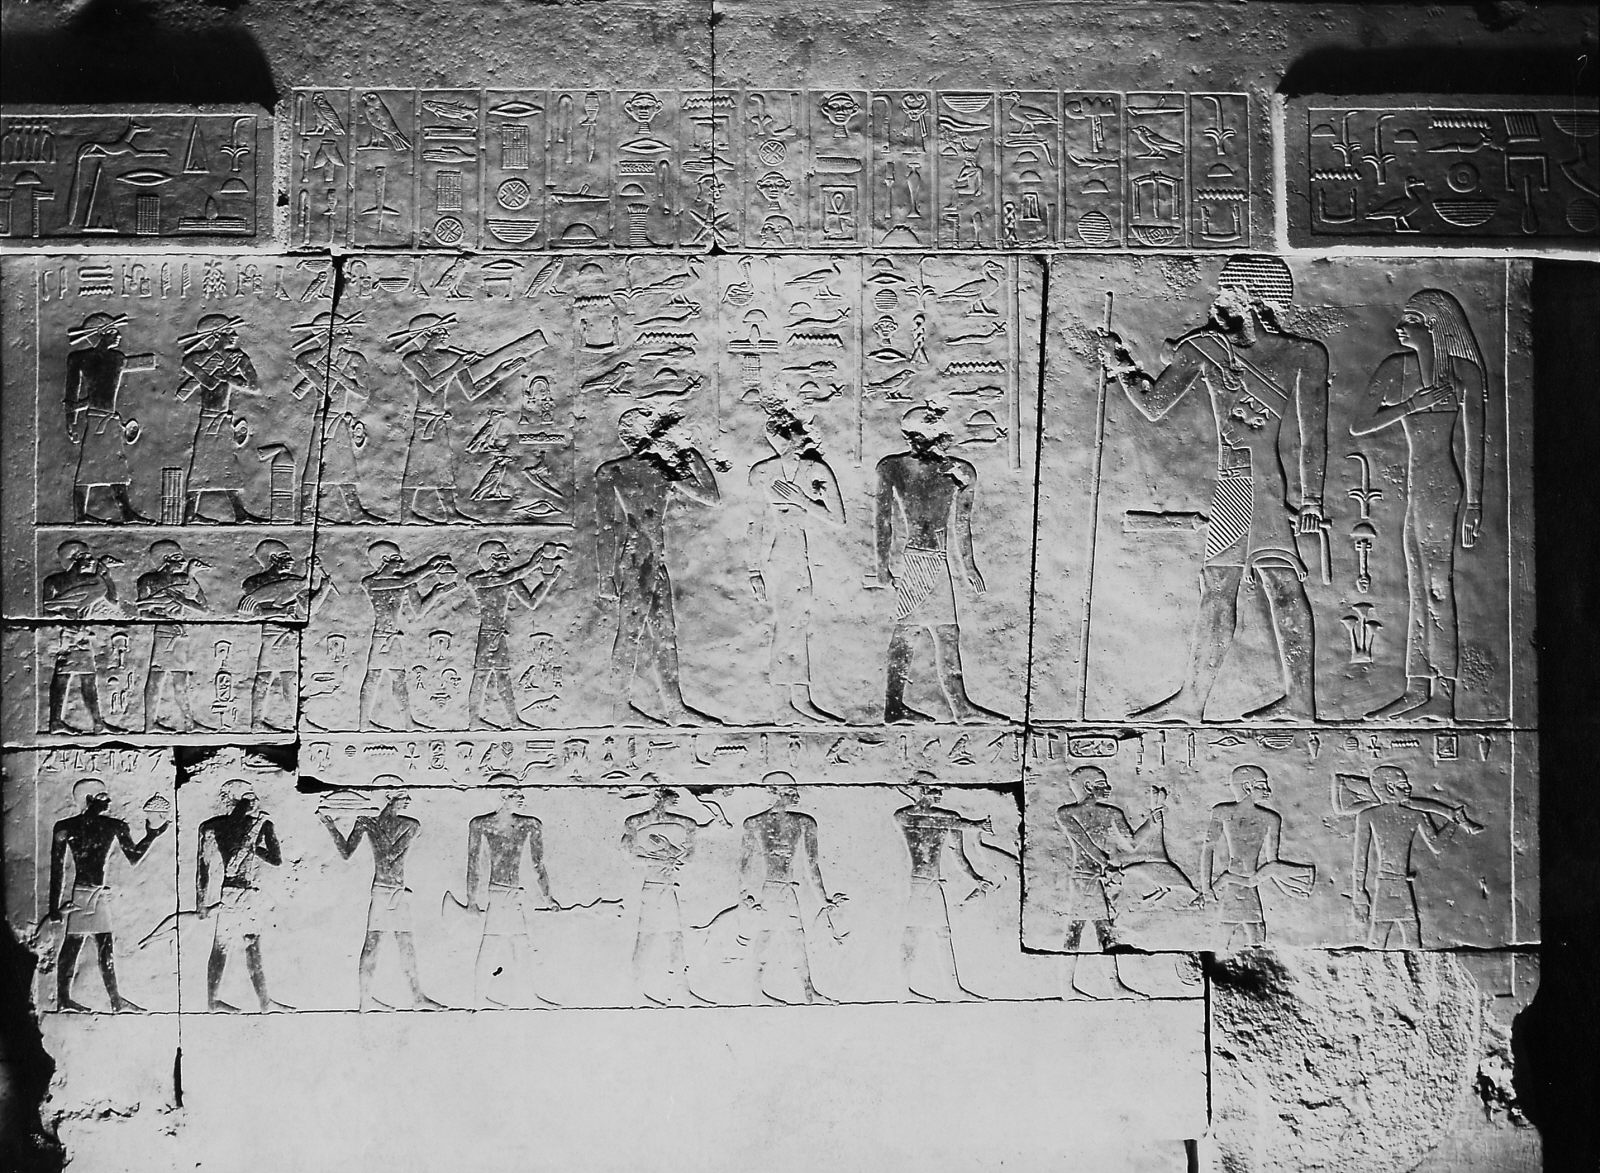 "Kaninuset I Blocks of relief from G 2155, Kaninisut [I], chapel, western wall (relief between false doors depicting standing figures of Kaninisut and his wife Neferhanisut and their three children, Harwer, Wadjethetep, and Kaninisut ""the younger""; registers of scribes and ka-priest: [top register] Wehemka, Kaemwehem, Mesy, Tjenti, [middle register] Penu, Wahib, Itjef, Khufuseneb, Ity; and register of offering bearers below: [bottom register] Niankhhathor, Kairi, Mernetjerukhufu, Seshmu, Seneb, Iinefret, Shendju, Khufuankh, Mer[...]khufu, Senebdisu). Currently in the Kunsthistorisches Museum, Vienna (ÄS 8006). Photo ID KHM_o_neg_nr_0159, photo and description courtesy of the Giza Archives maintained by Harvard University and the Museum of Fine Arts Boston, online at Digital Giza."